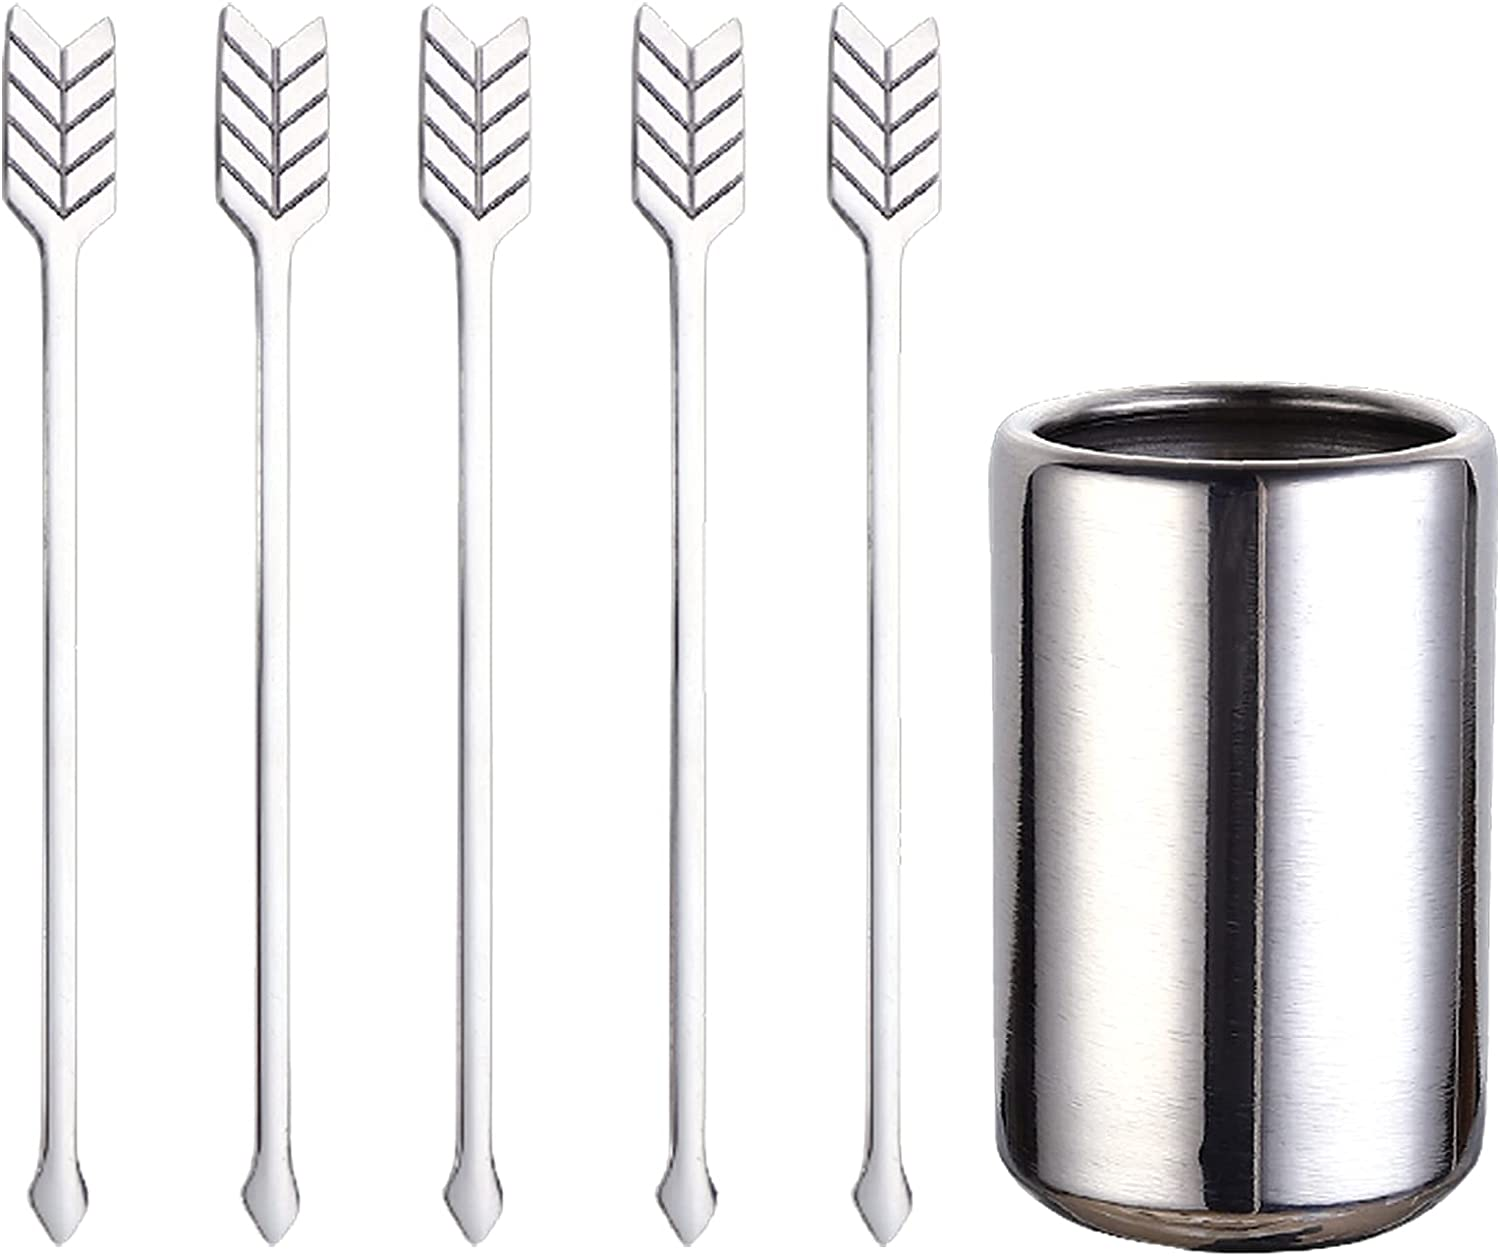 5 Pcs Stainless Steel Coffee Beverage Stirrers-Stir Cocktail Drink Swizzle Stick with Stirrers Holder, Silver